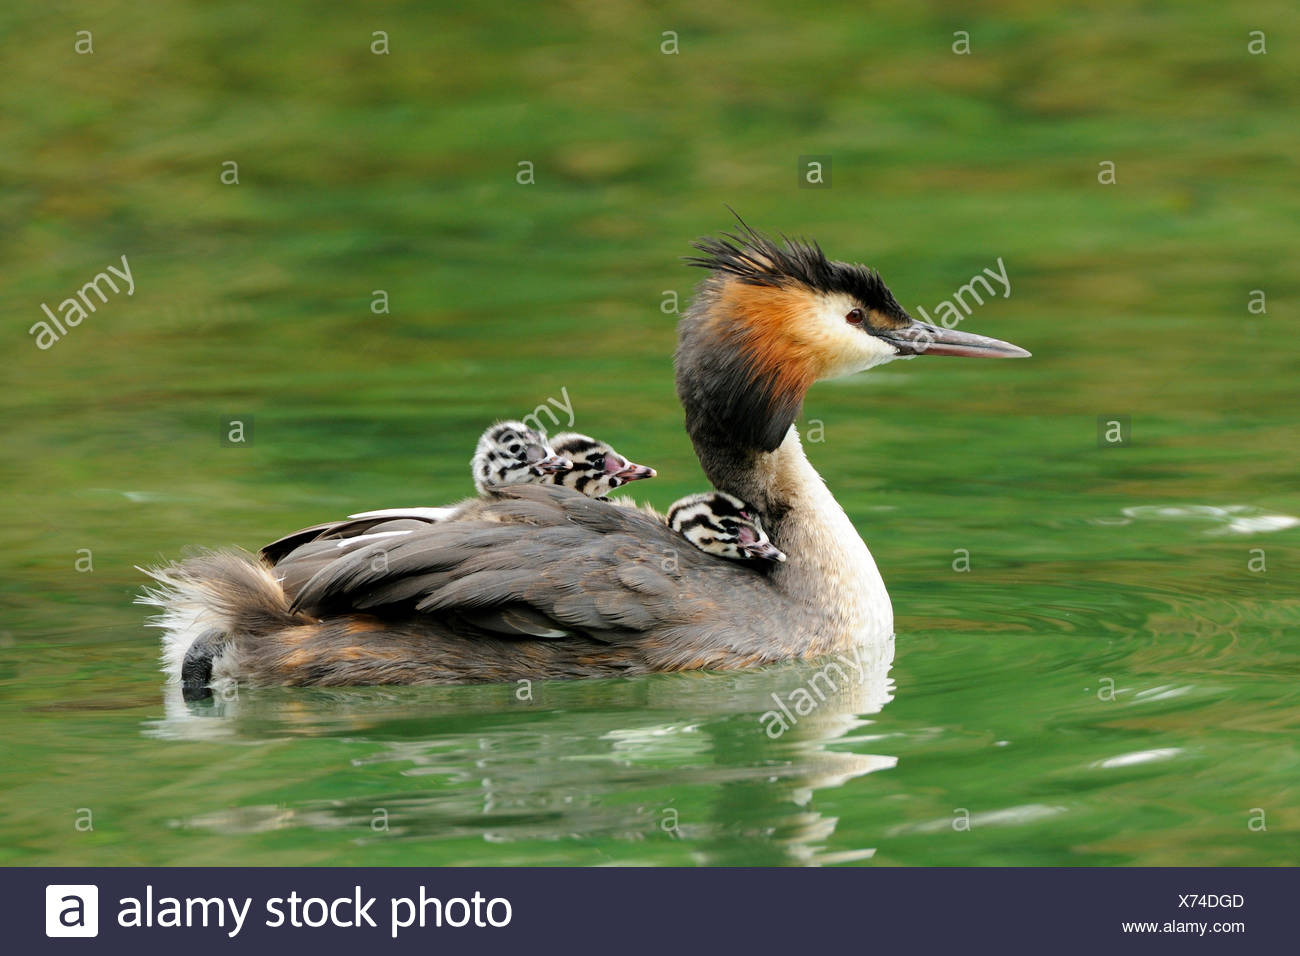 Great crested grebe (Podiceps cristatus) with young birds in the feathers on the back, Lake Lucerne, Canton of Lucerne - Stock Image